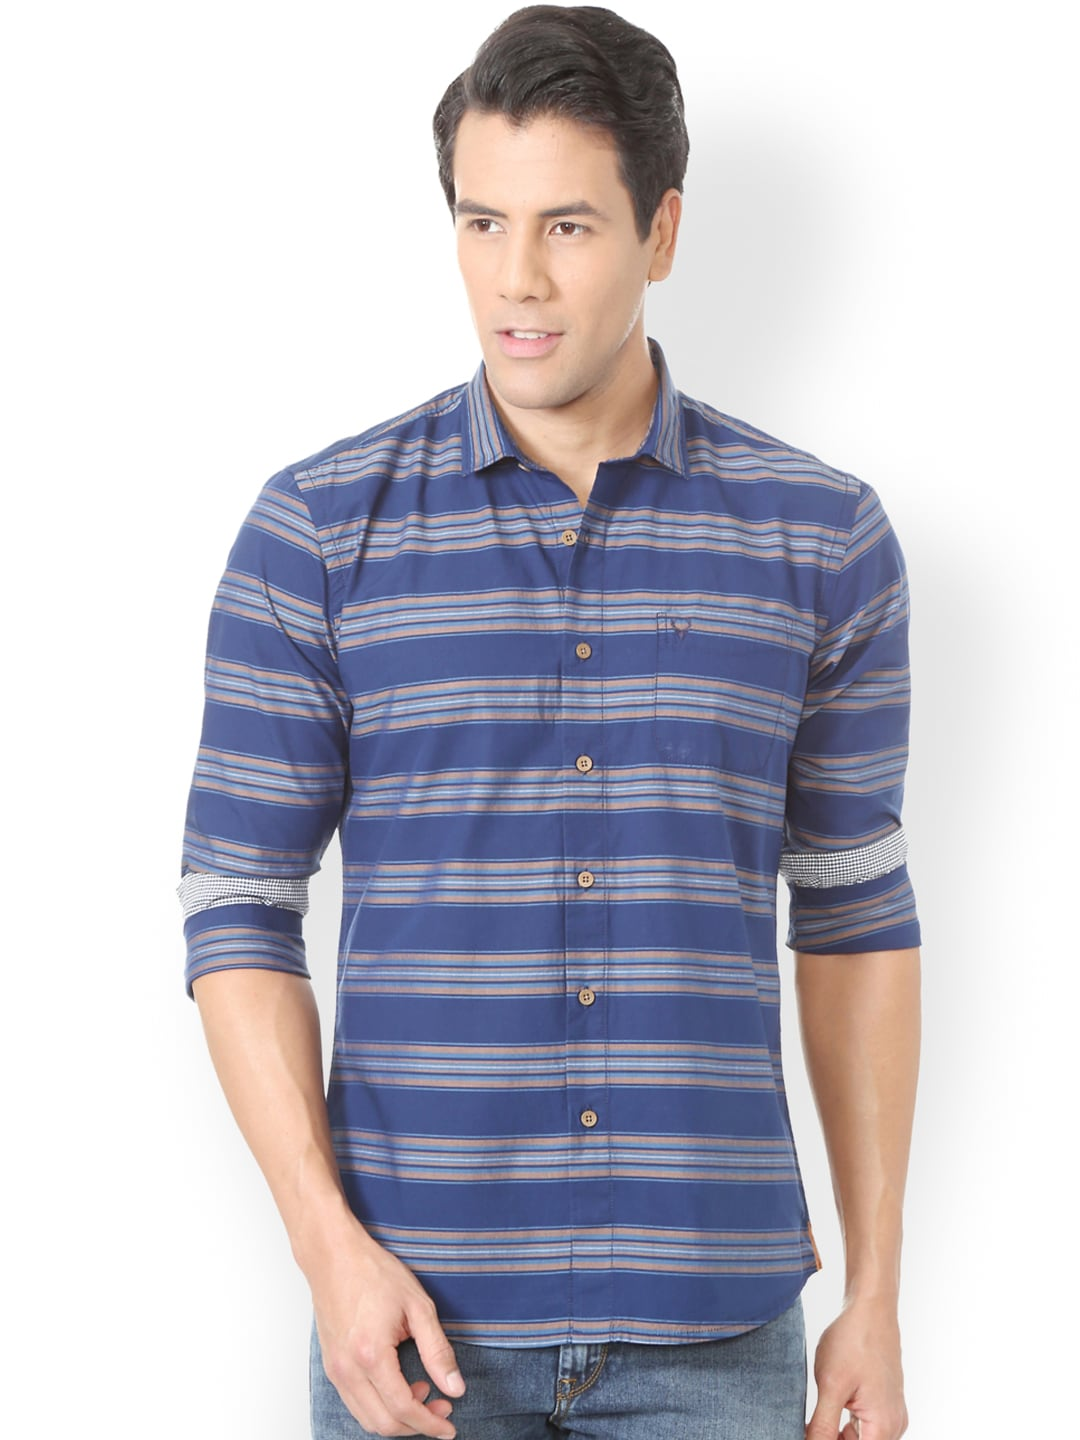 Solly Jeans Co. by Allen Solly Men Blue & Grey Regular Fit Striped Casual Shirt image